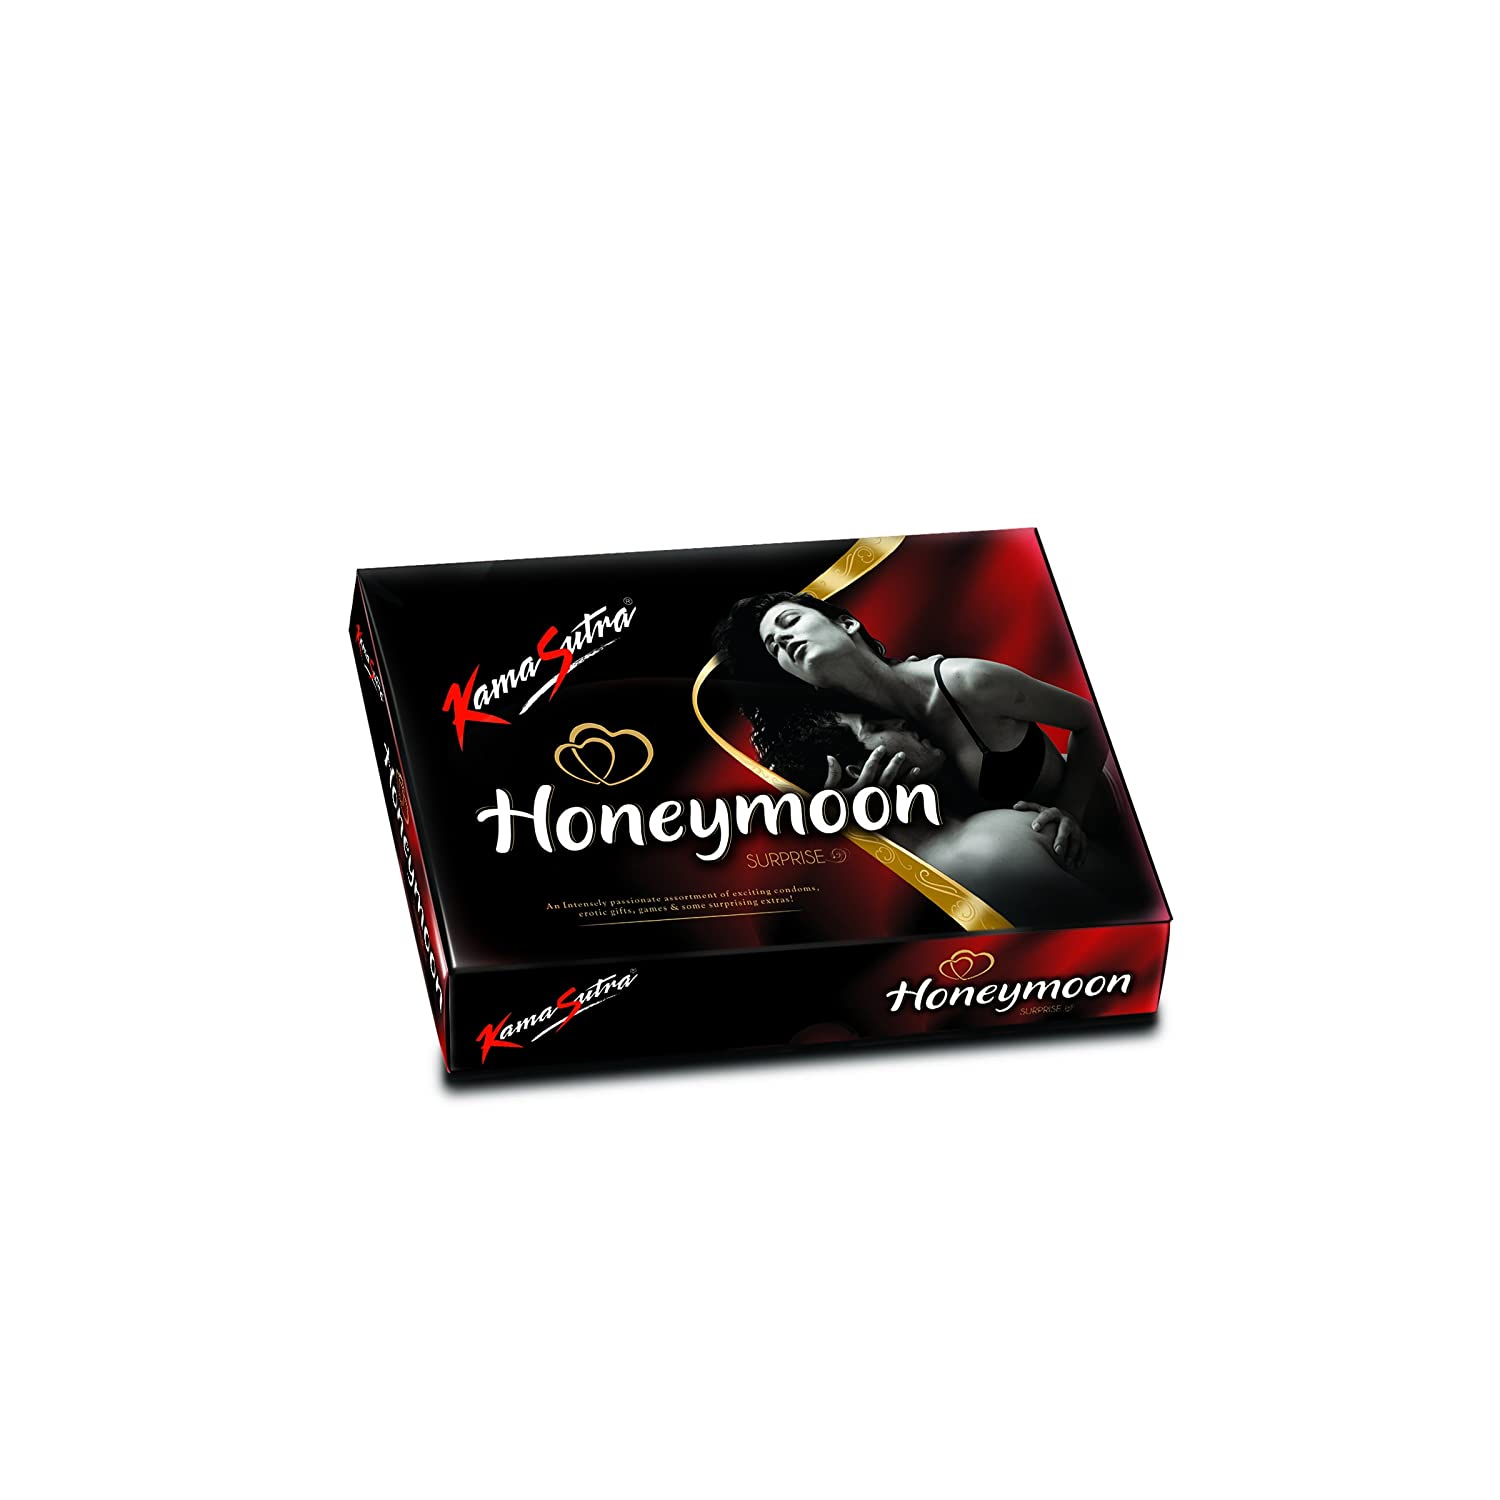 KamaSutra Honeymoon Surprise Pack - 21 Condoms